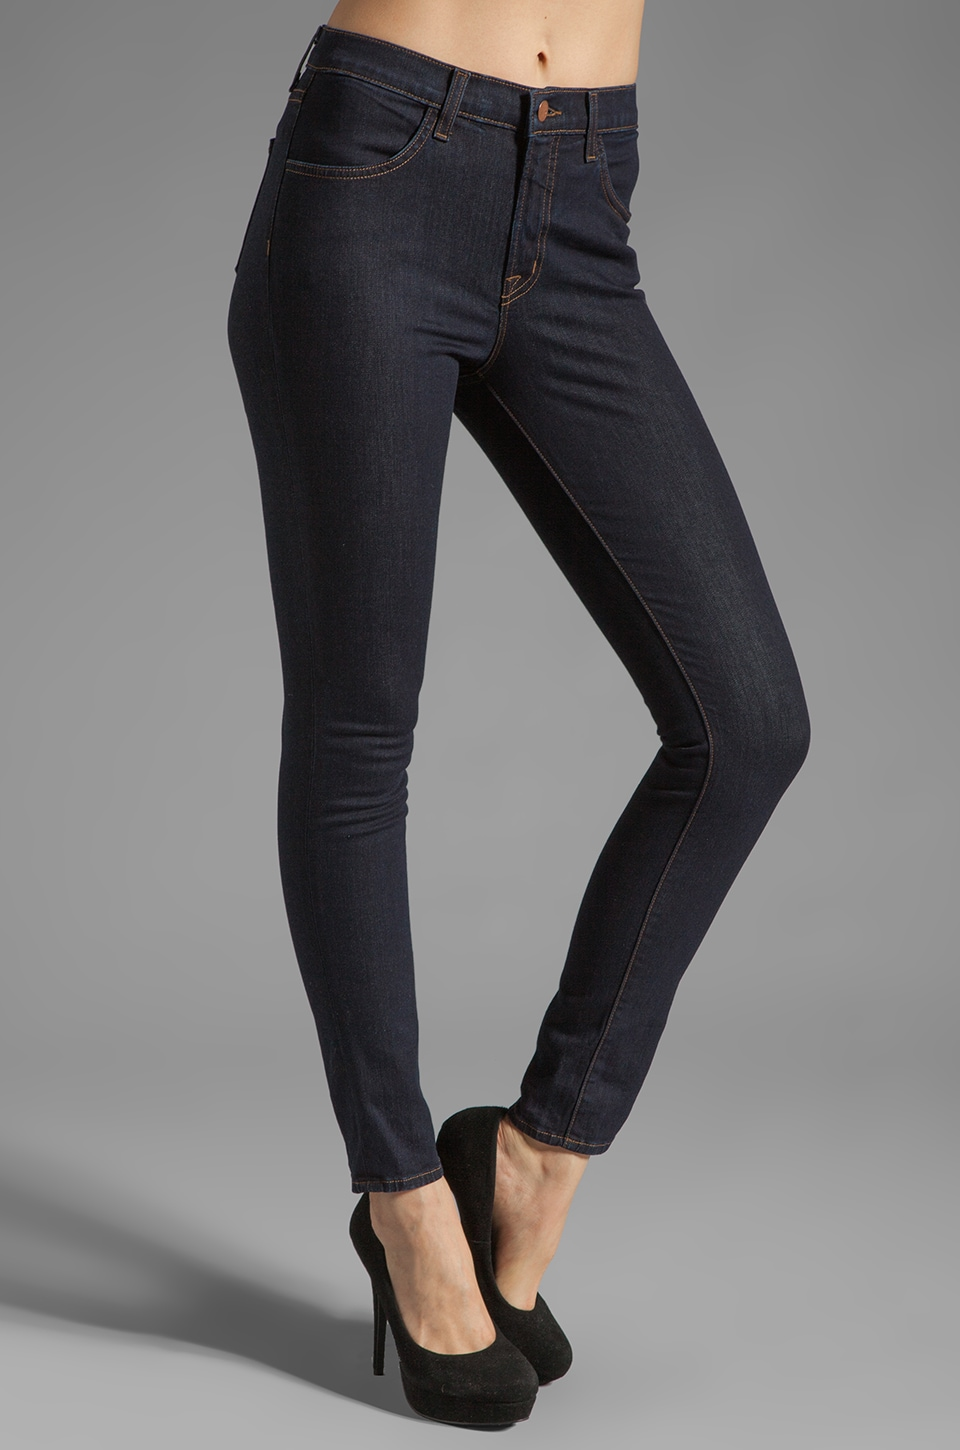 J Brand Maria High Rise Skinny in Starless